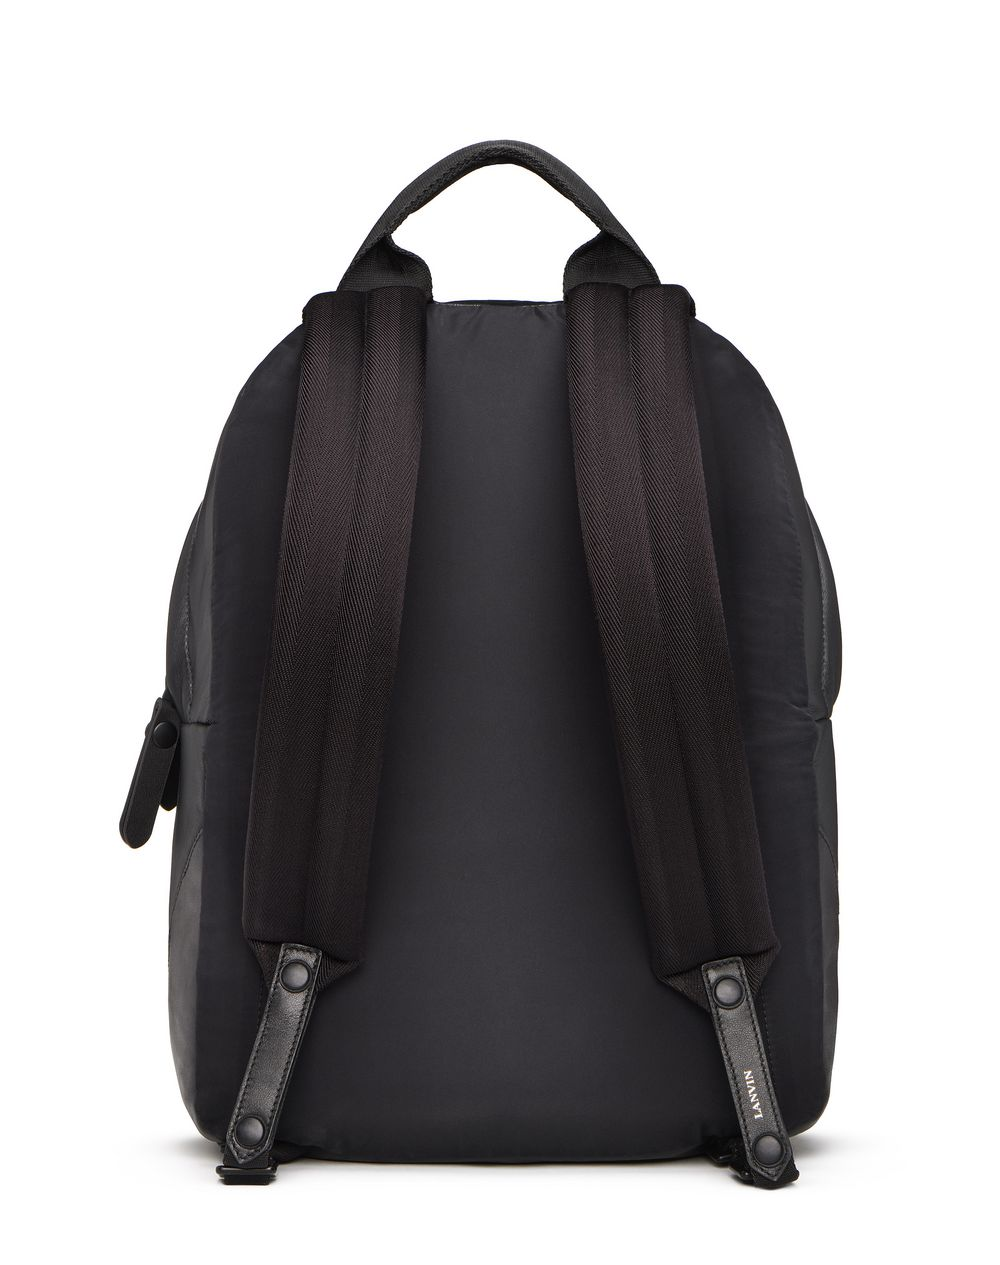 BLACK LEATHER BACKPACK  - Lanvin